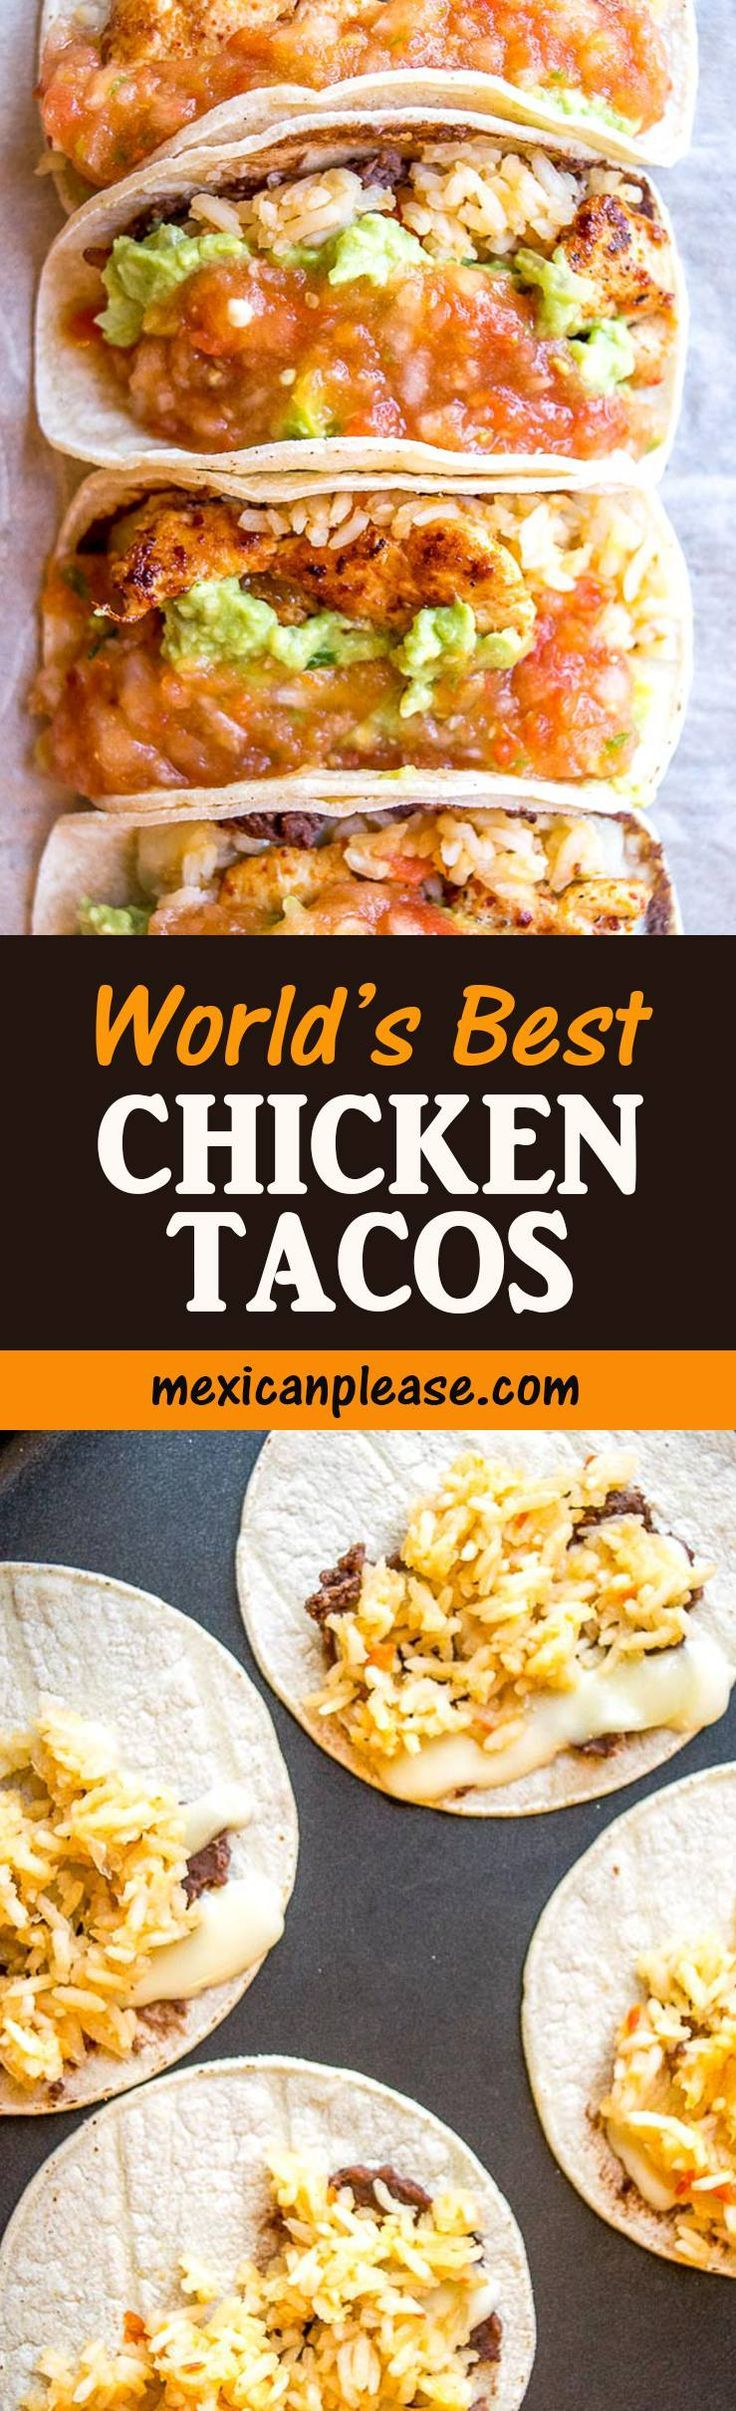 I know, World's Best is a big claim, but these chicken tacos are the ones I always come back to.  The home cooked salsa is the key so don't skimp on that step.  So good!  #chicken #tacos #salsa #guacamole  mexicanplease.com